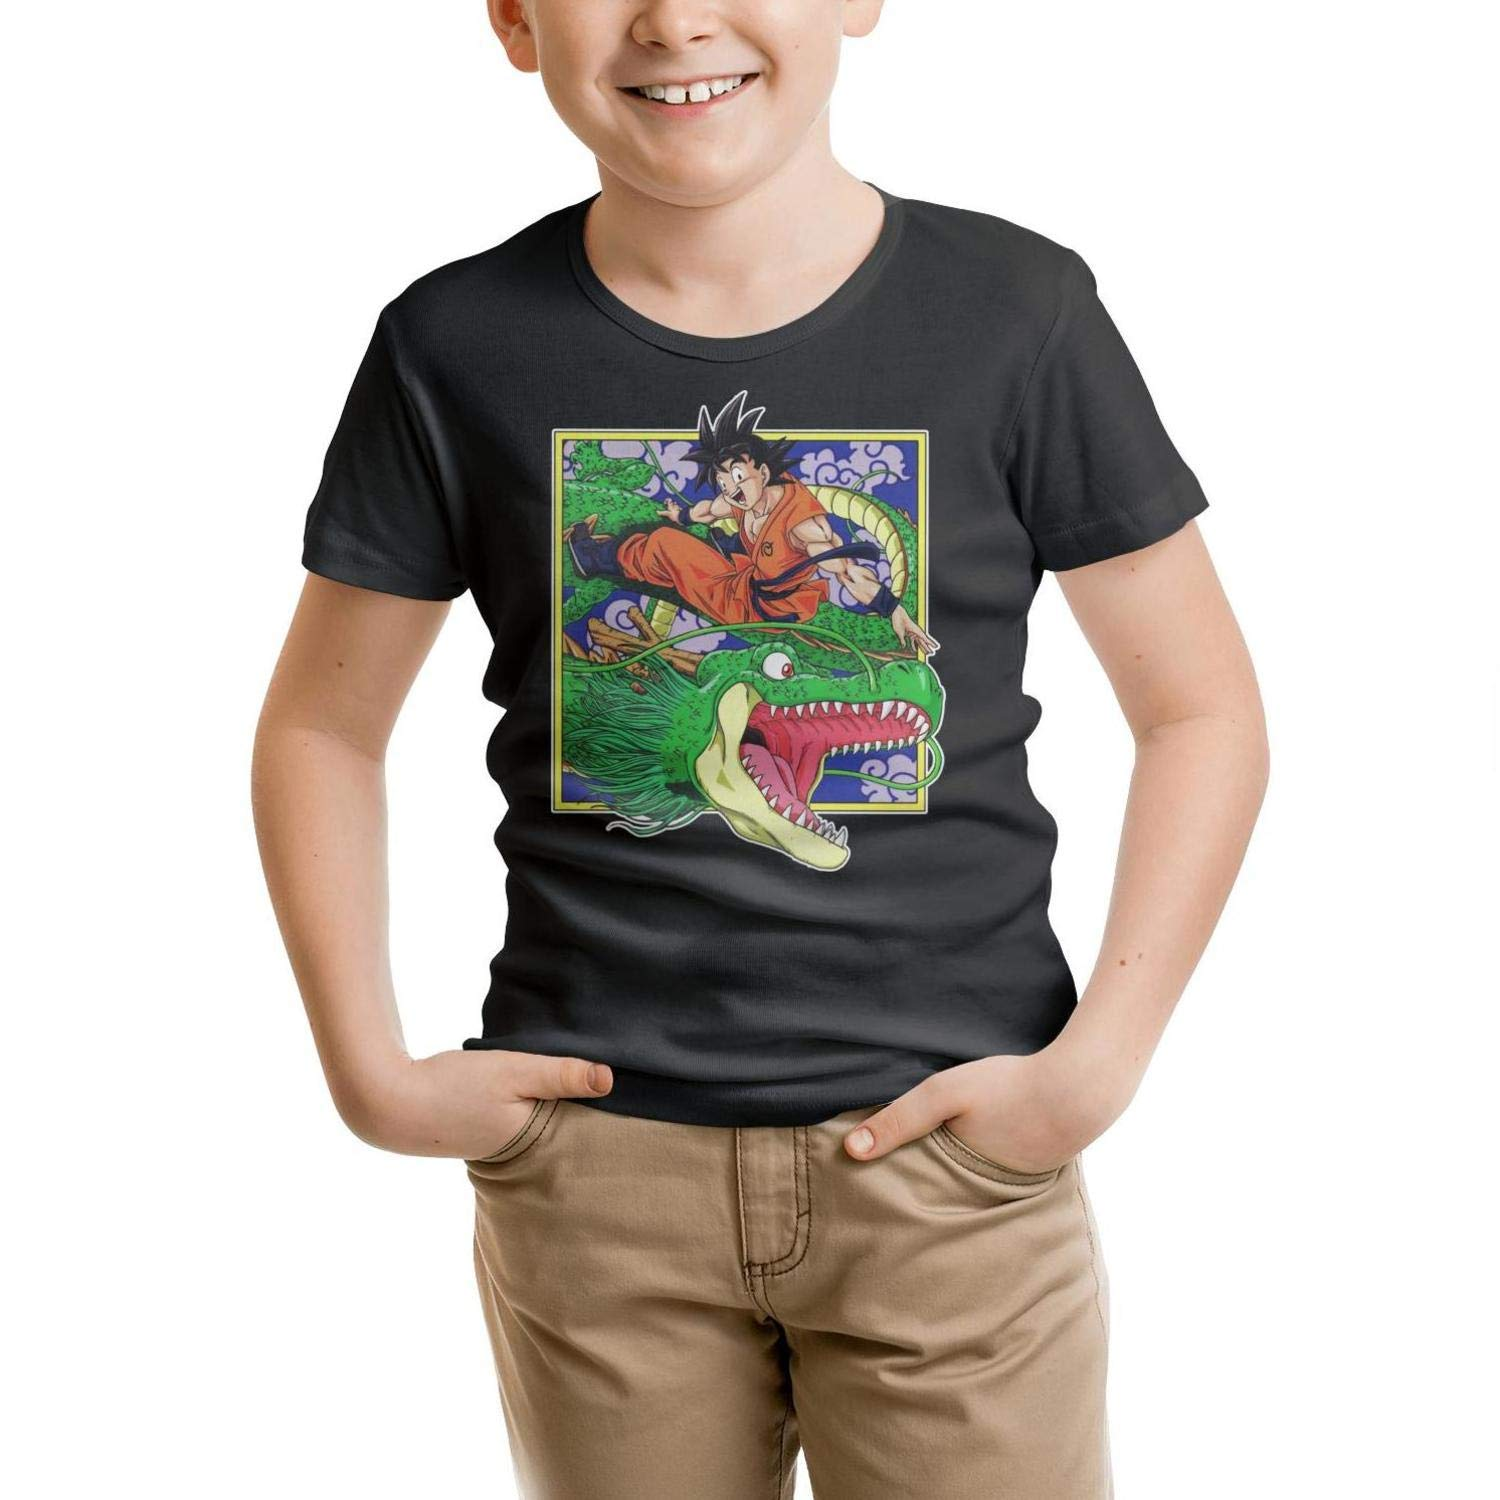 DYONG Short Sleeve Crew Neck Tshirt for Boys Fit Awesome Summer Tees